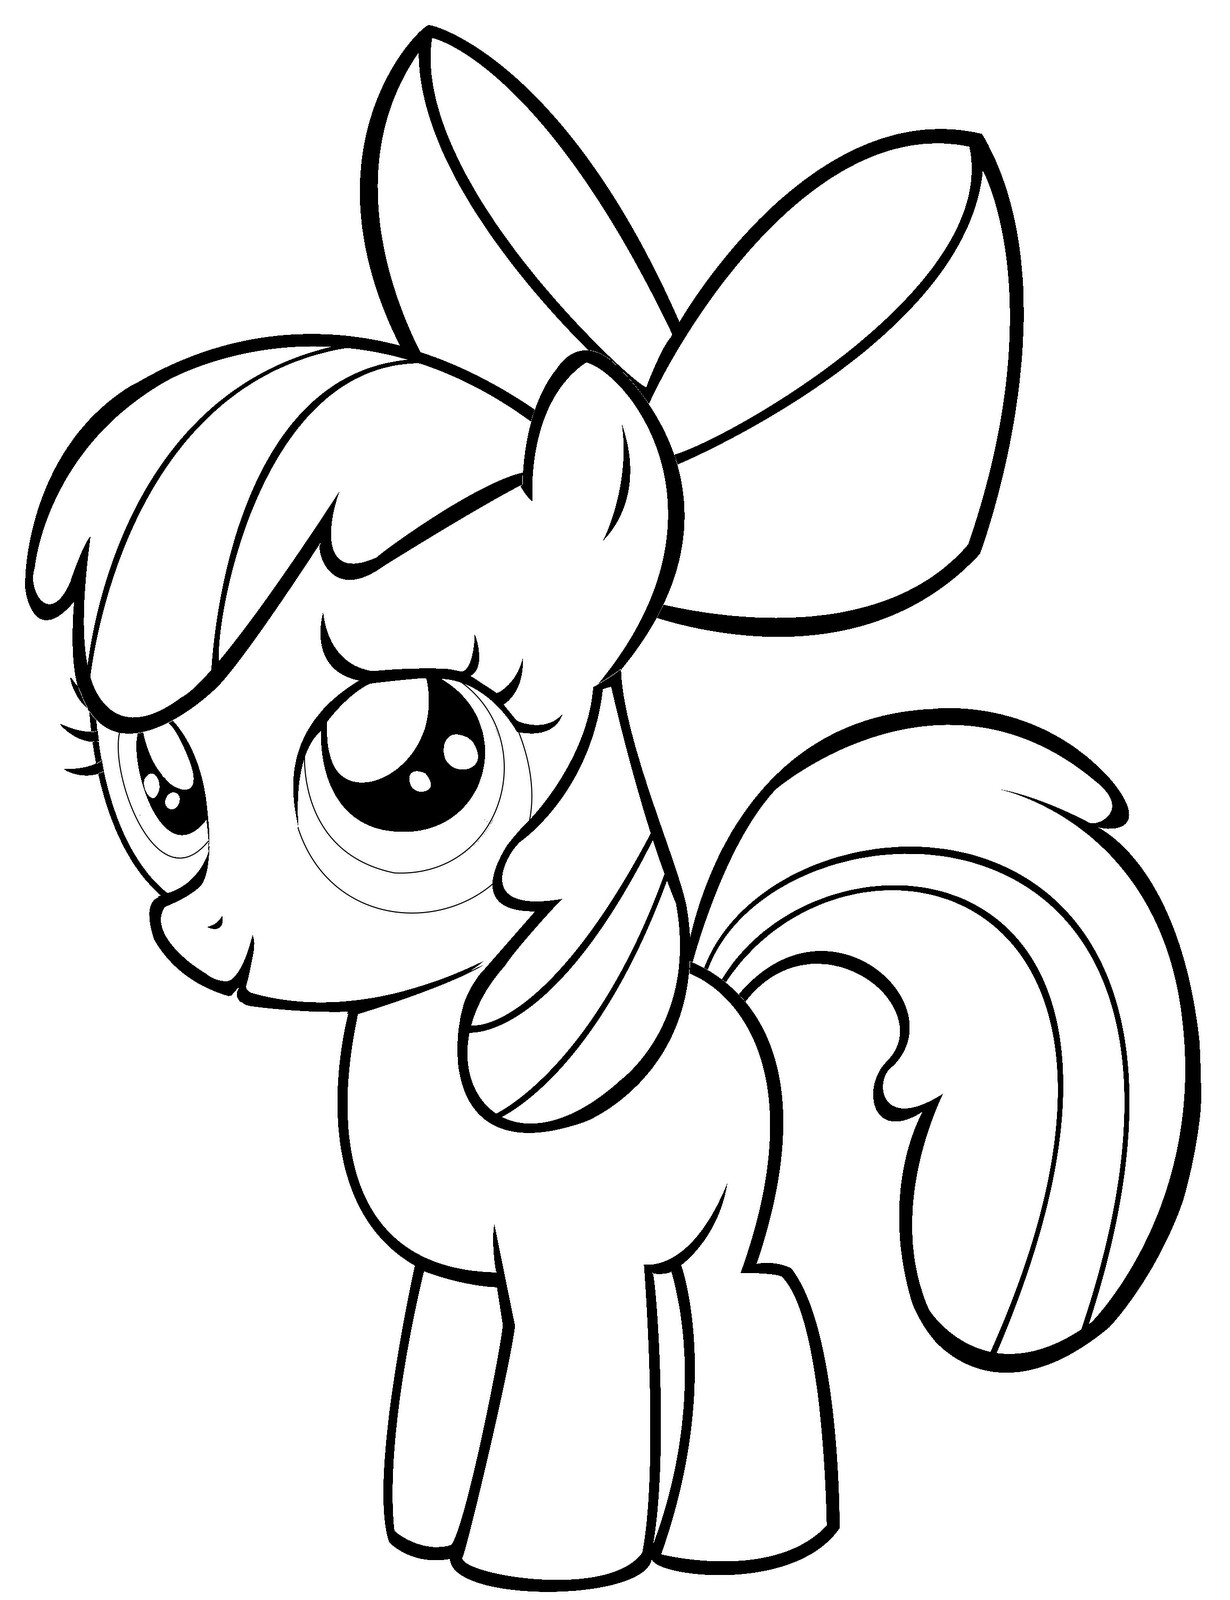 1230x1600 Inspiration My Little Pony Granny Smith Coloring Pages